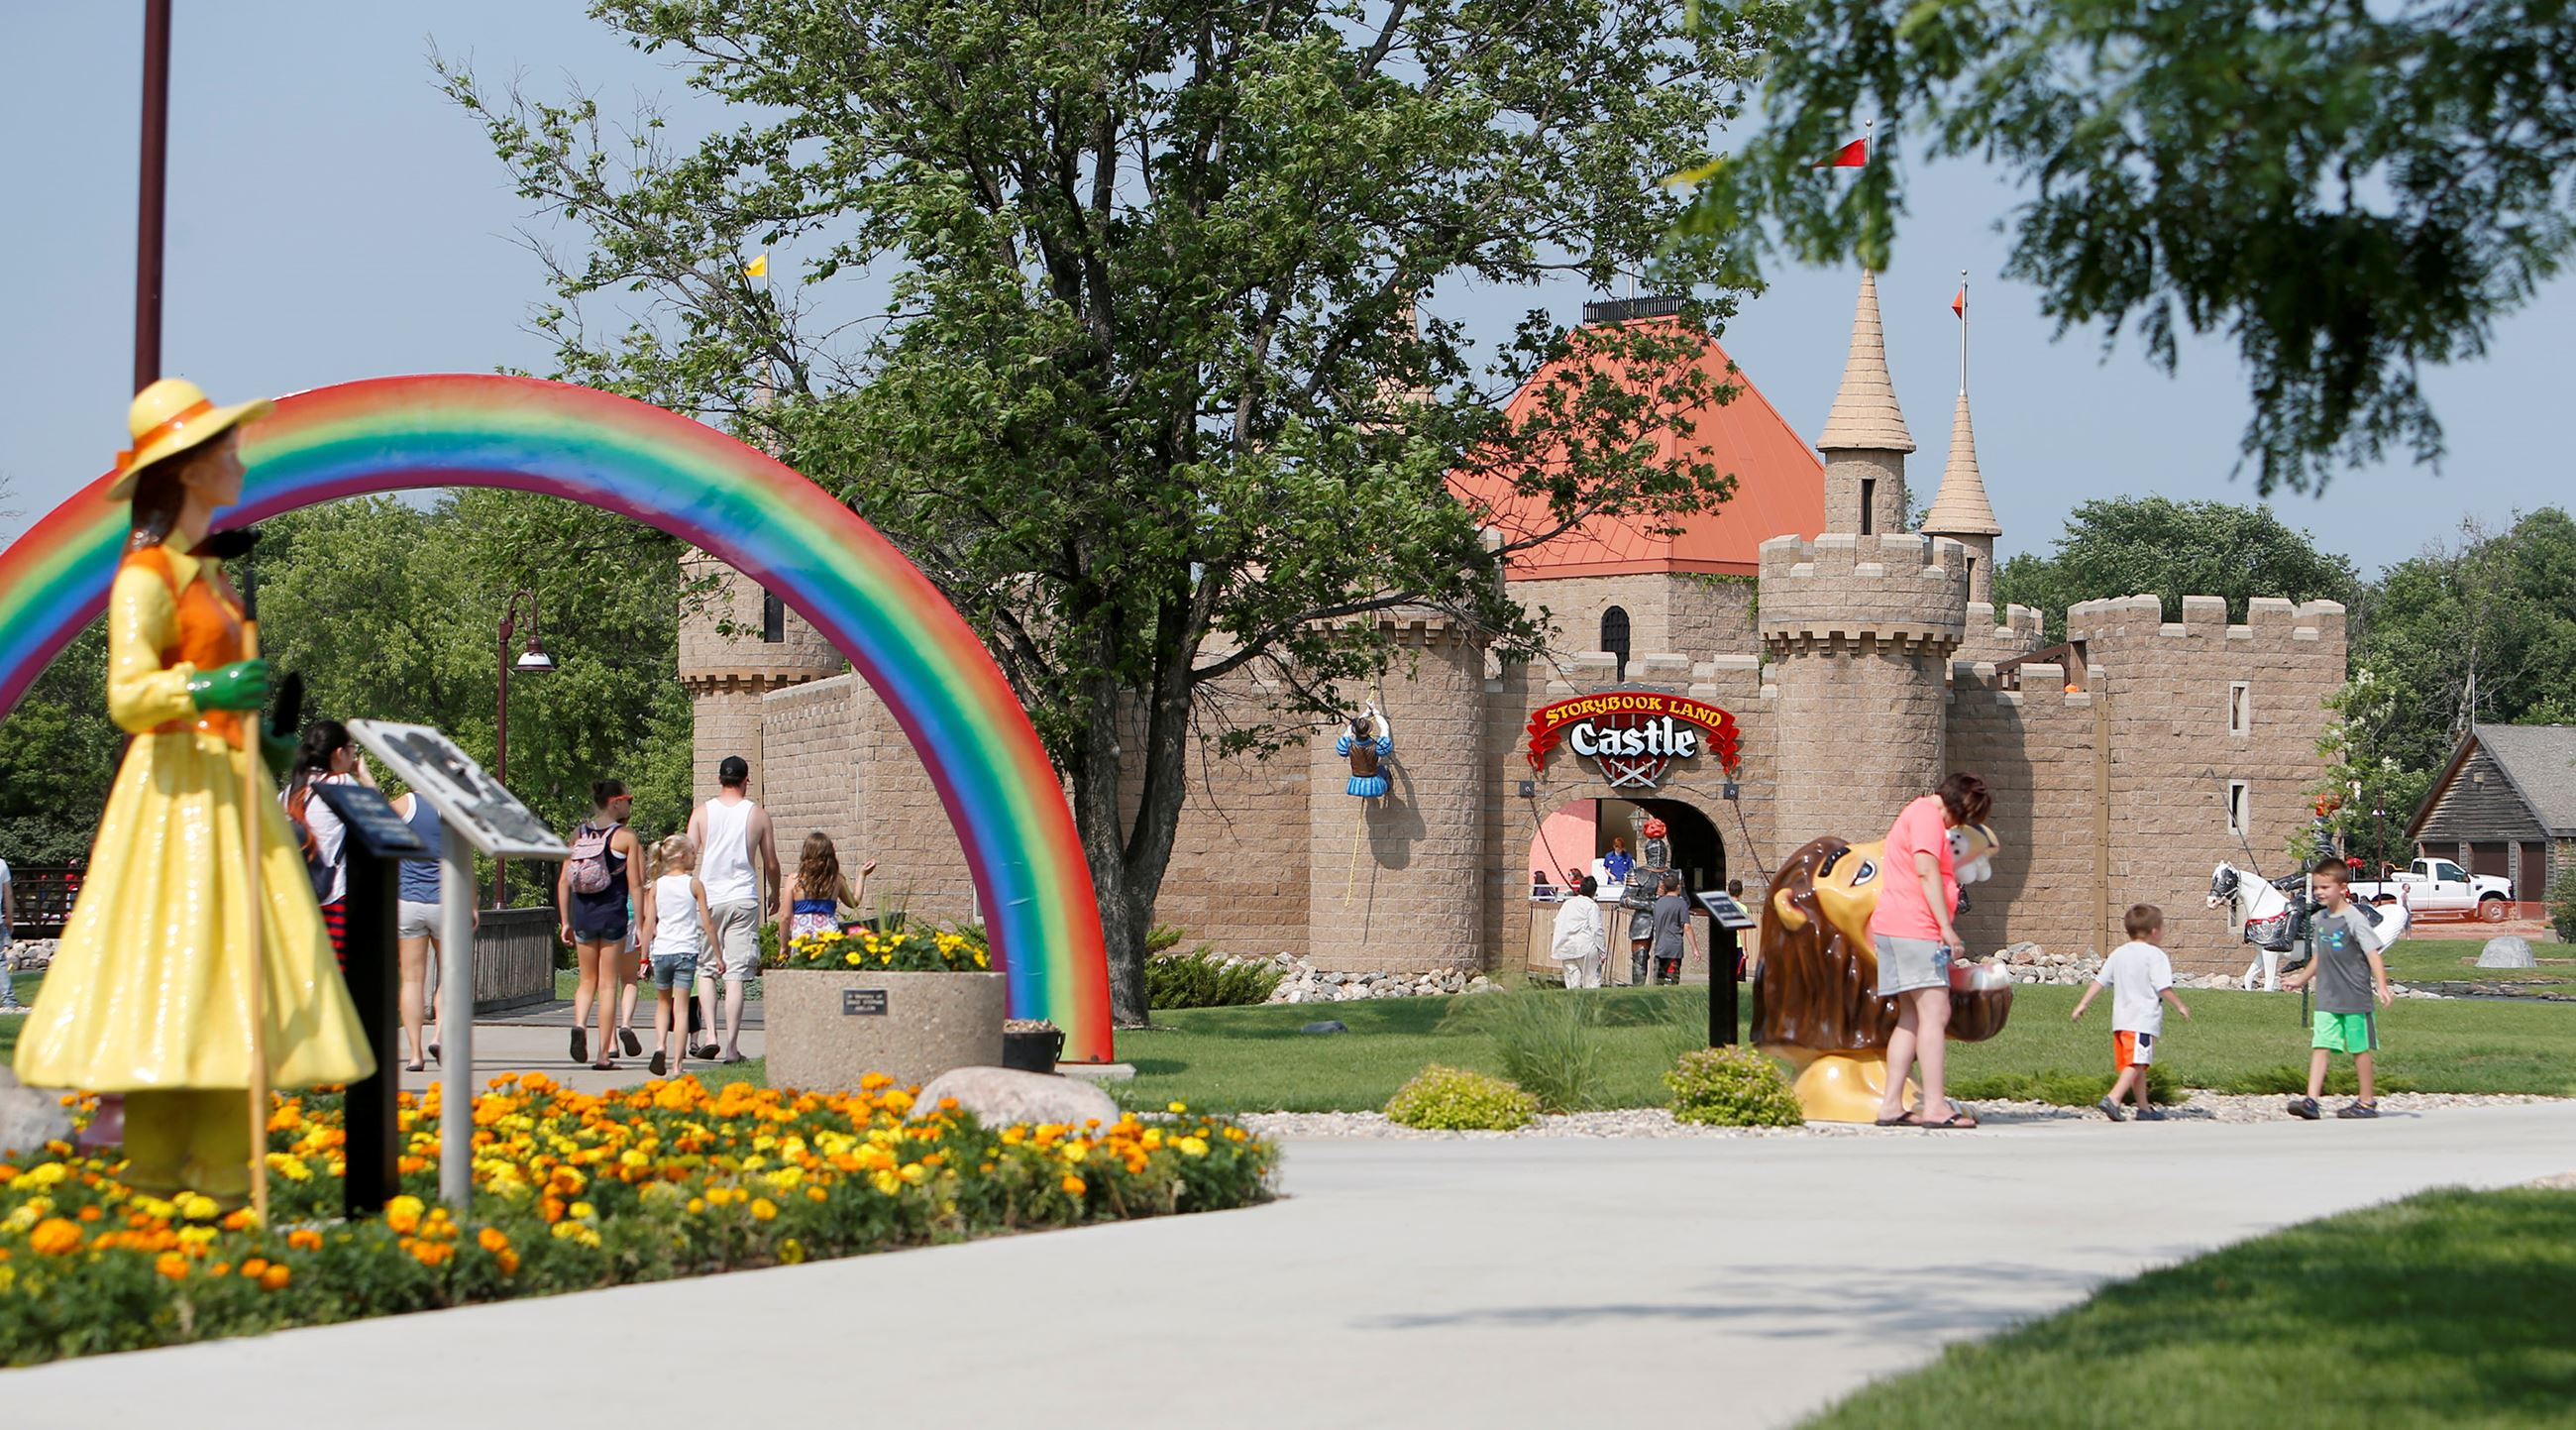 Storybook Land Castle